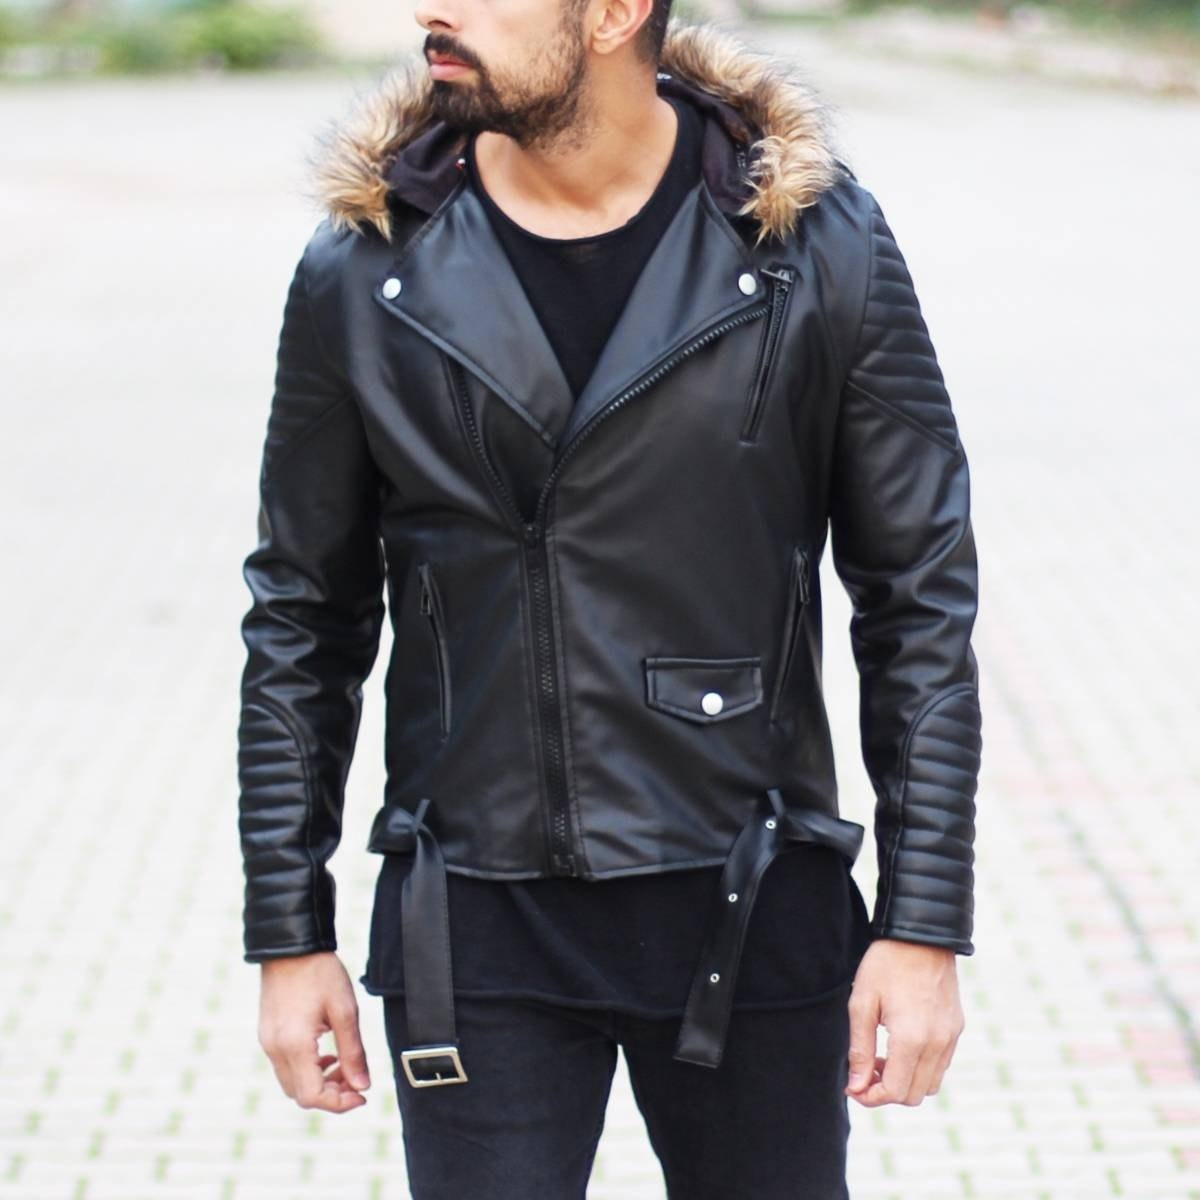 Furry Hooded Leather Jacket...